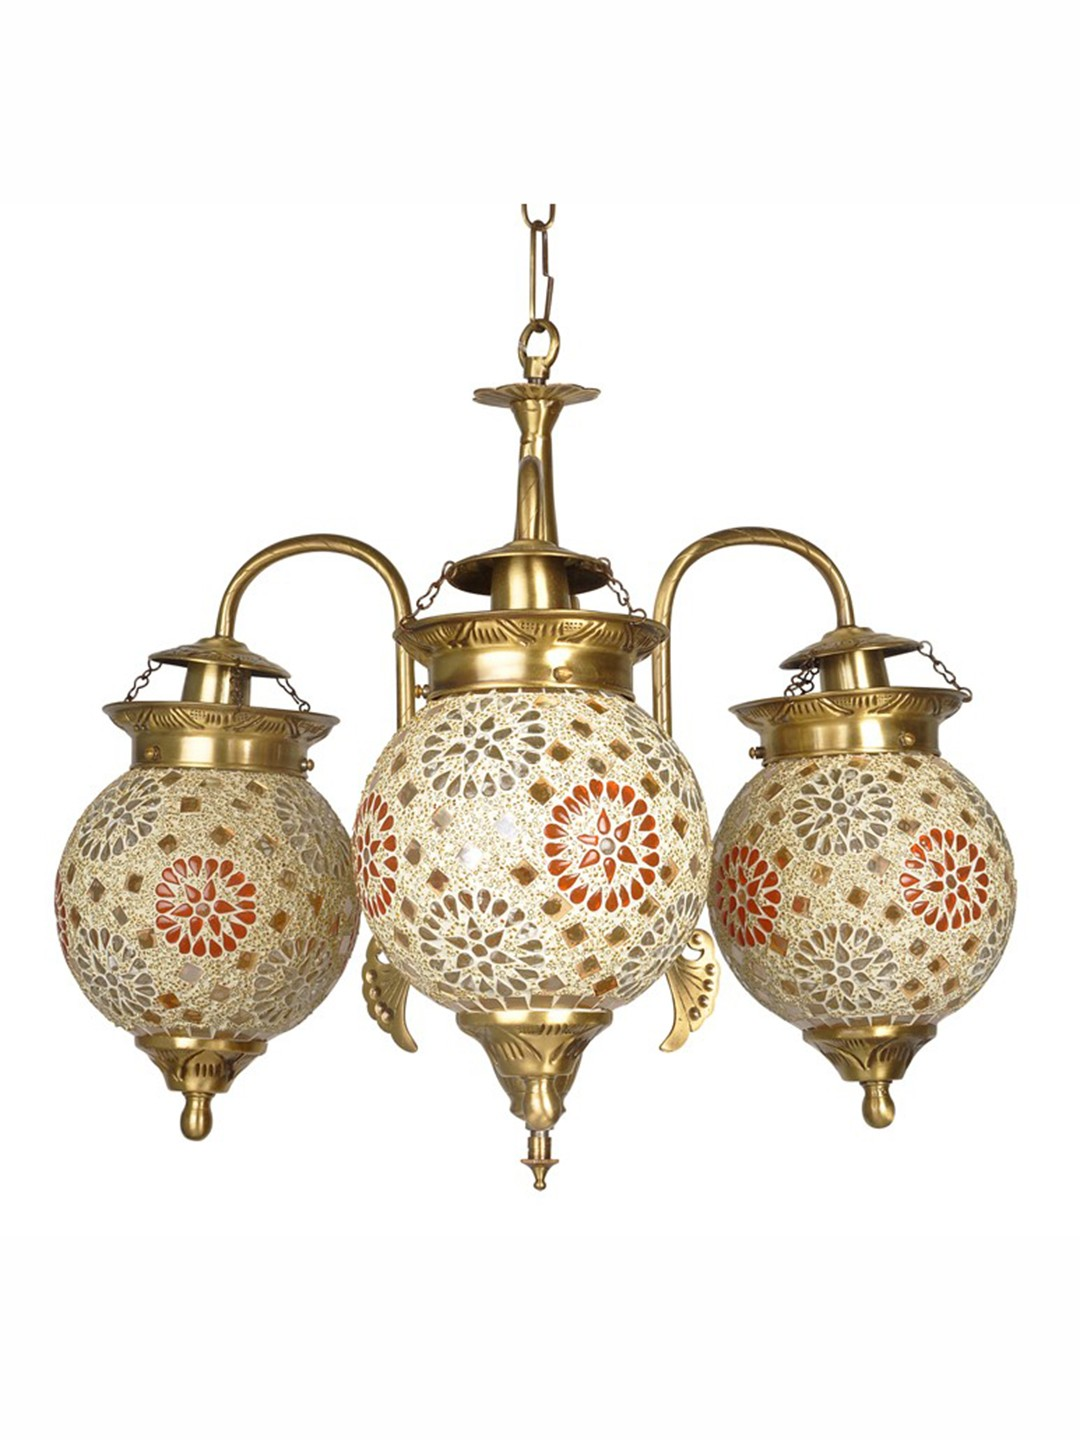 Tilak Golden Globes 3 Light Small Chandelier